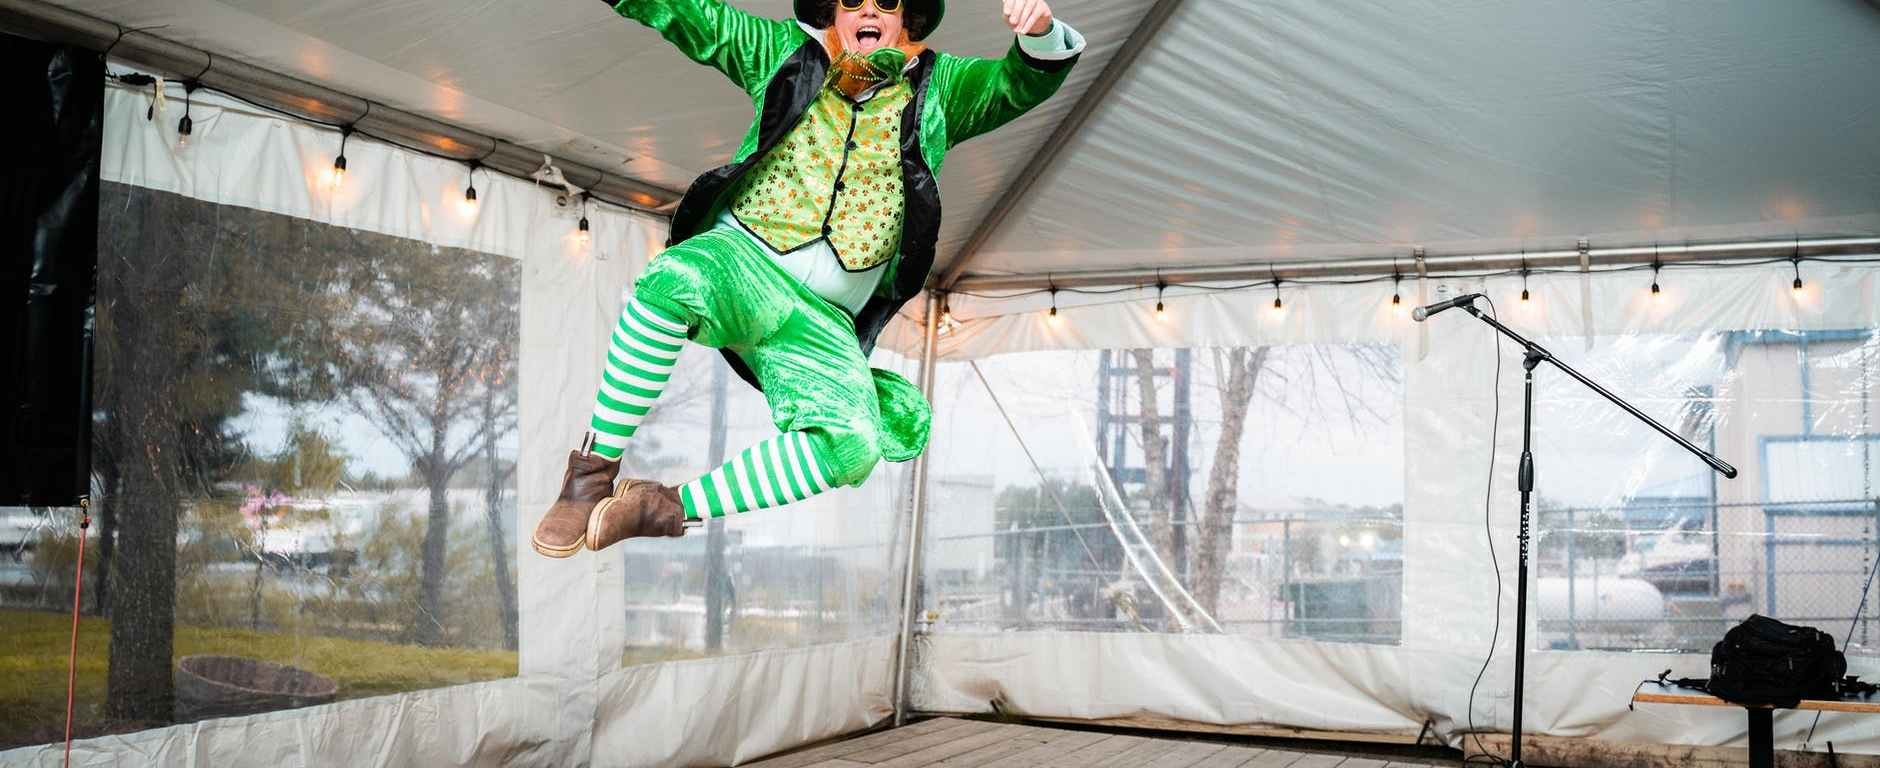 cheerful anonymous circus artist in colorful costume jumping in tent